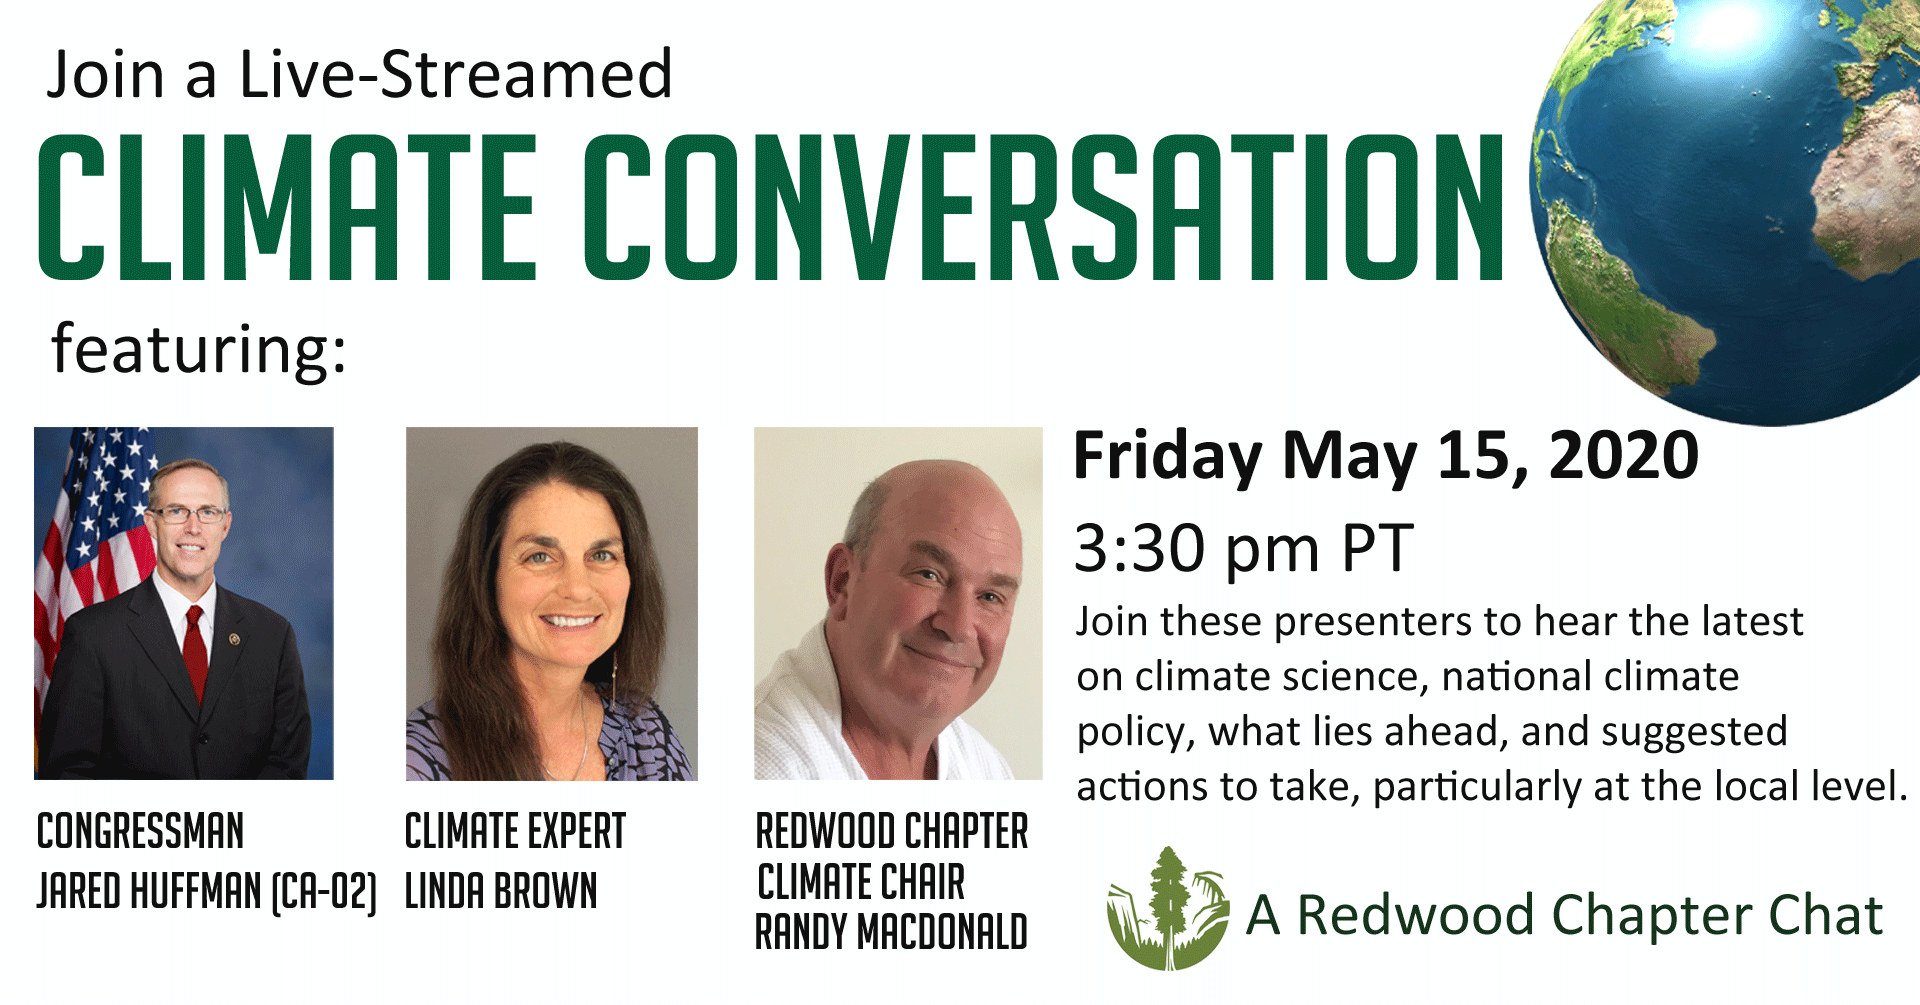 Join Congressman Jared Huffman, climate expert Linda Brown and Redwood Chapter Climate Chair Randy MacDonald to hear the latest on climate science, national climate policy, what lies ahead, and suggested actions to take, particularly at the local level.